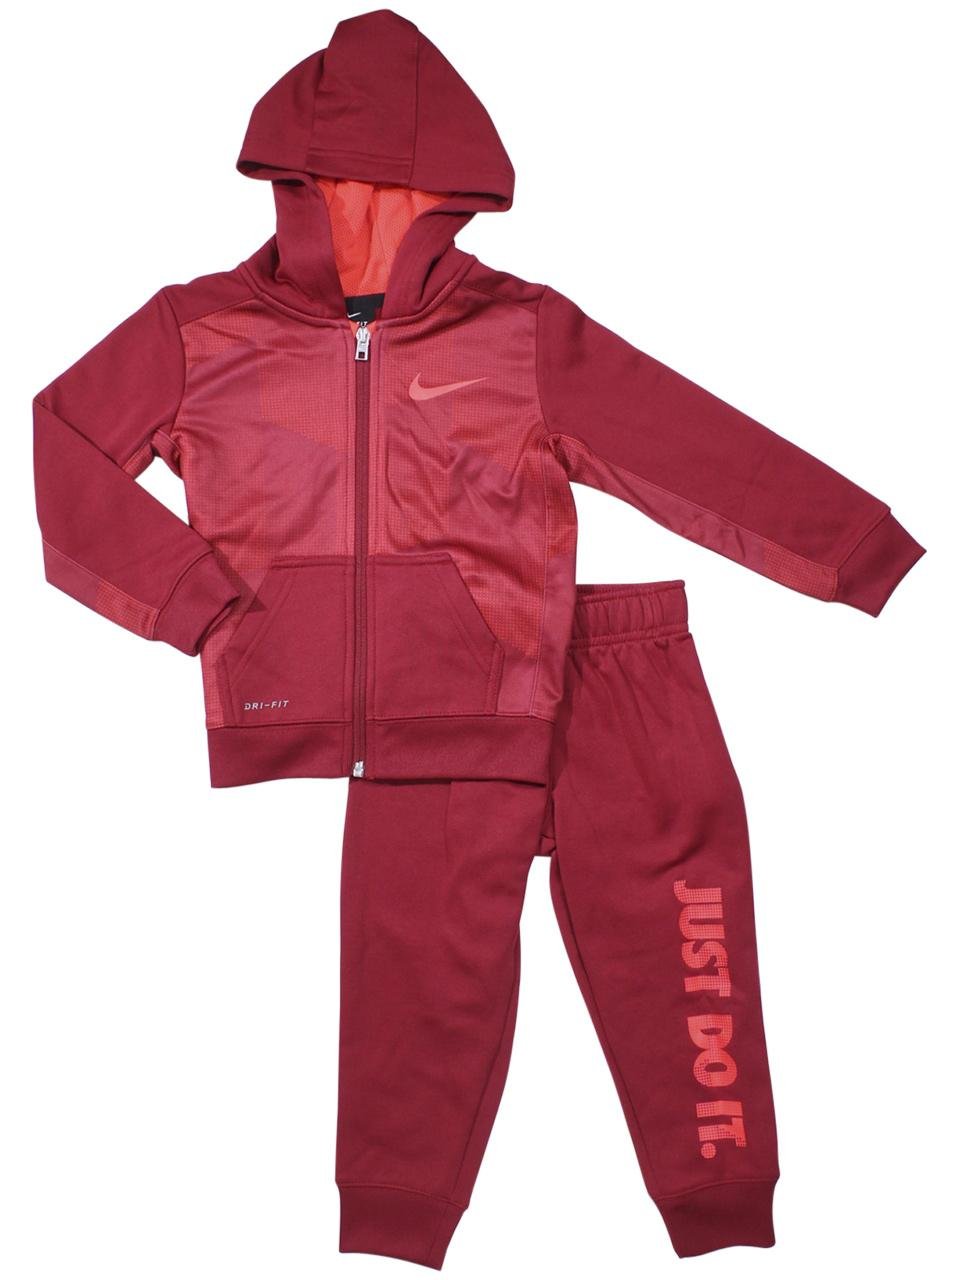 Nike Toddler Boy's 2-Piece Just Do It Therma Hoodie & Pants Set